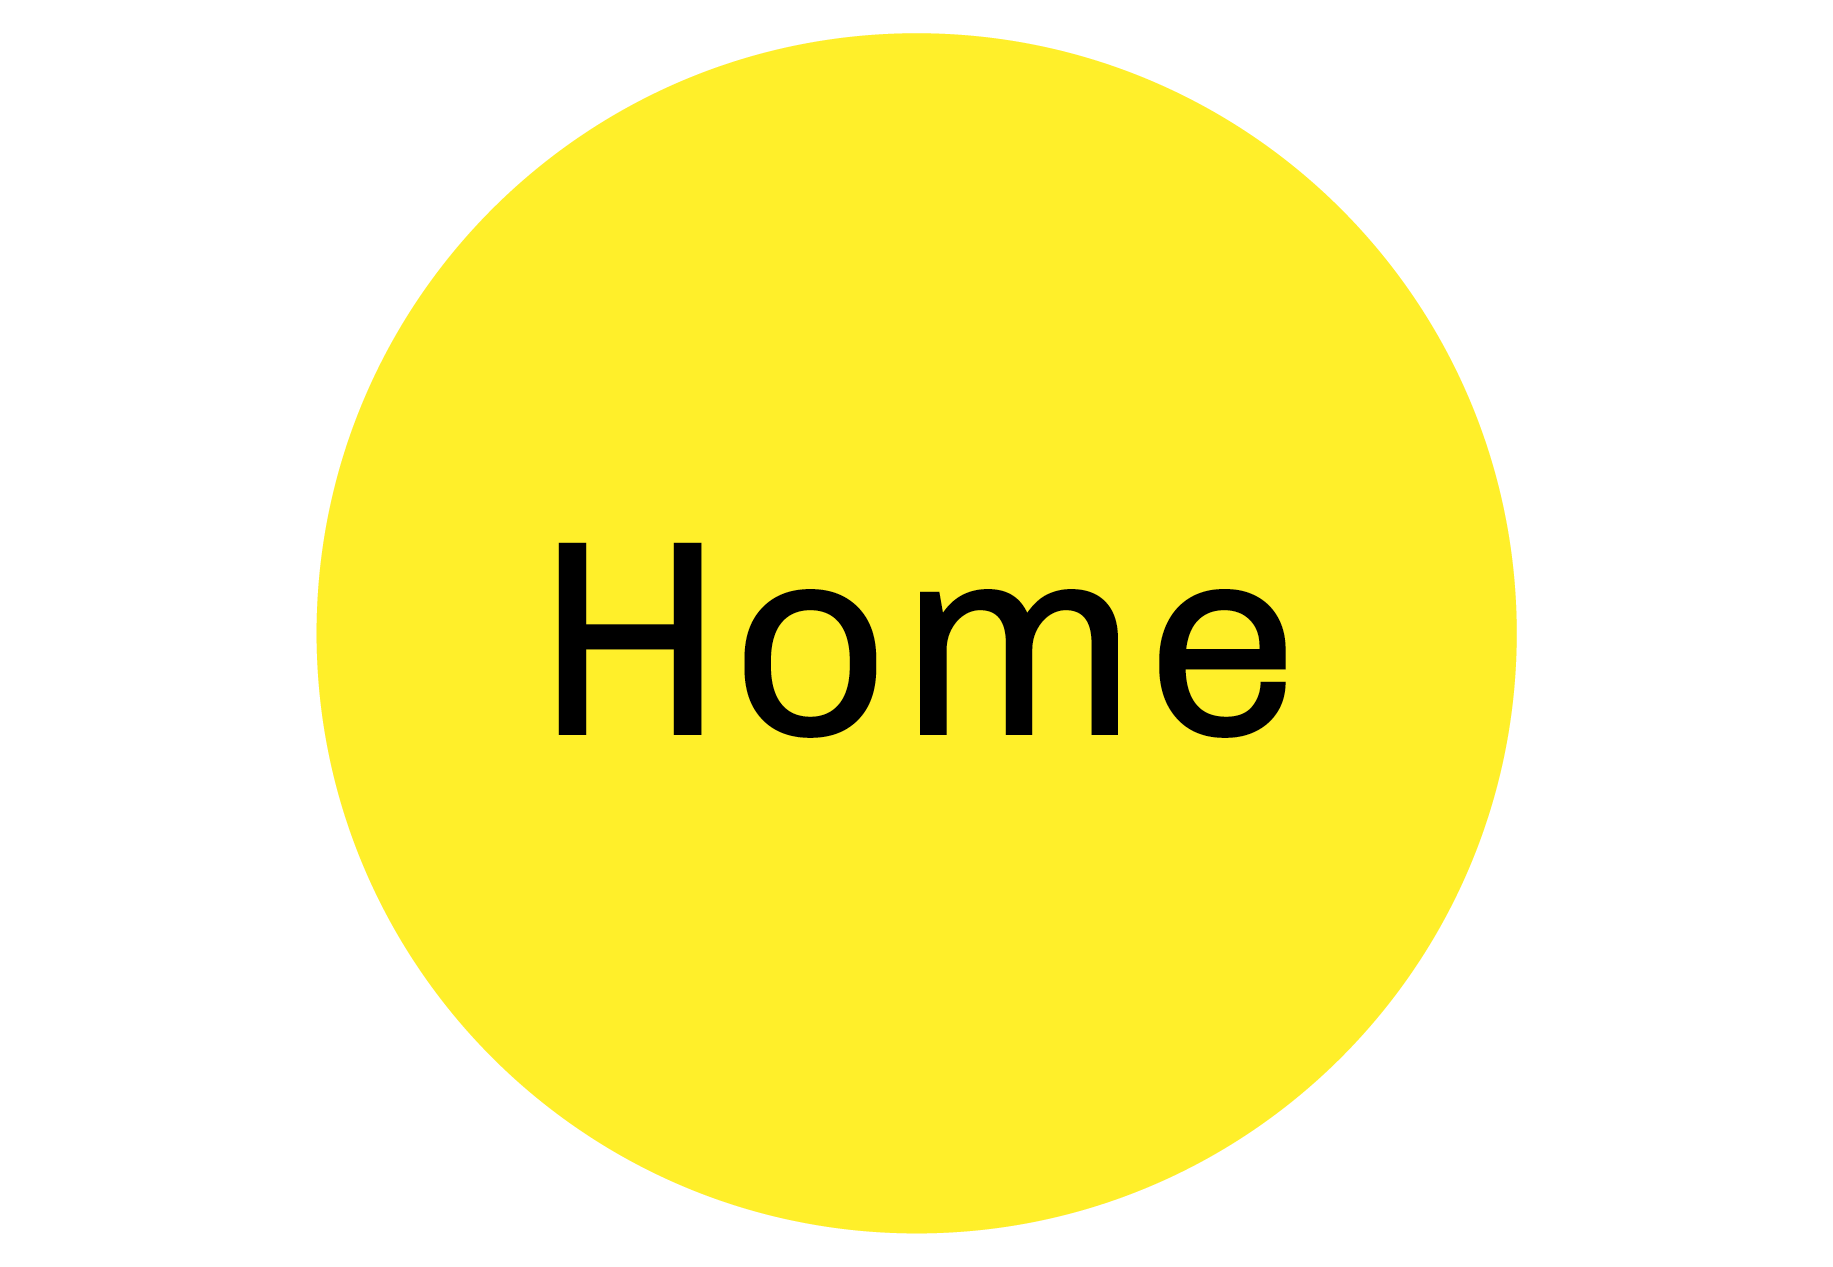 Home-buttonsround-Home.png